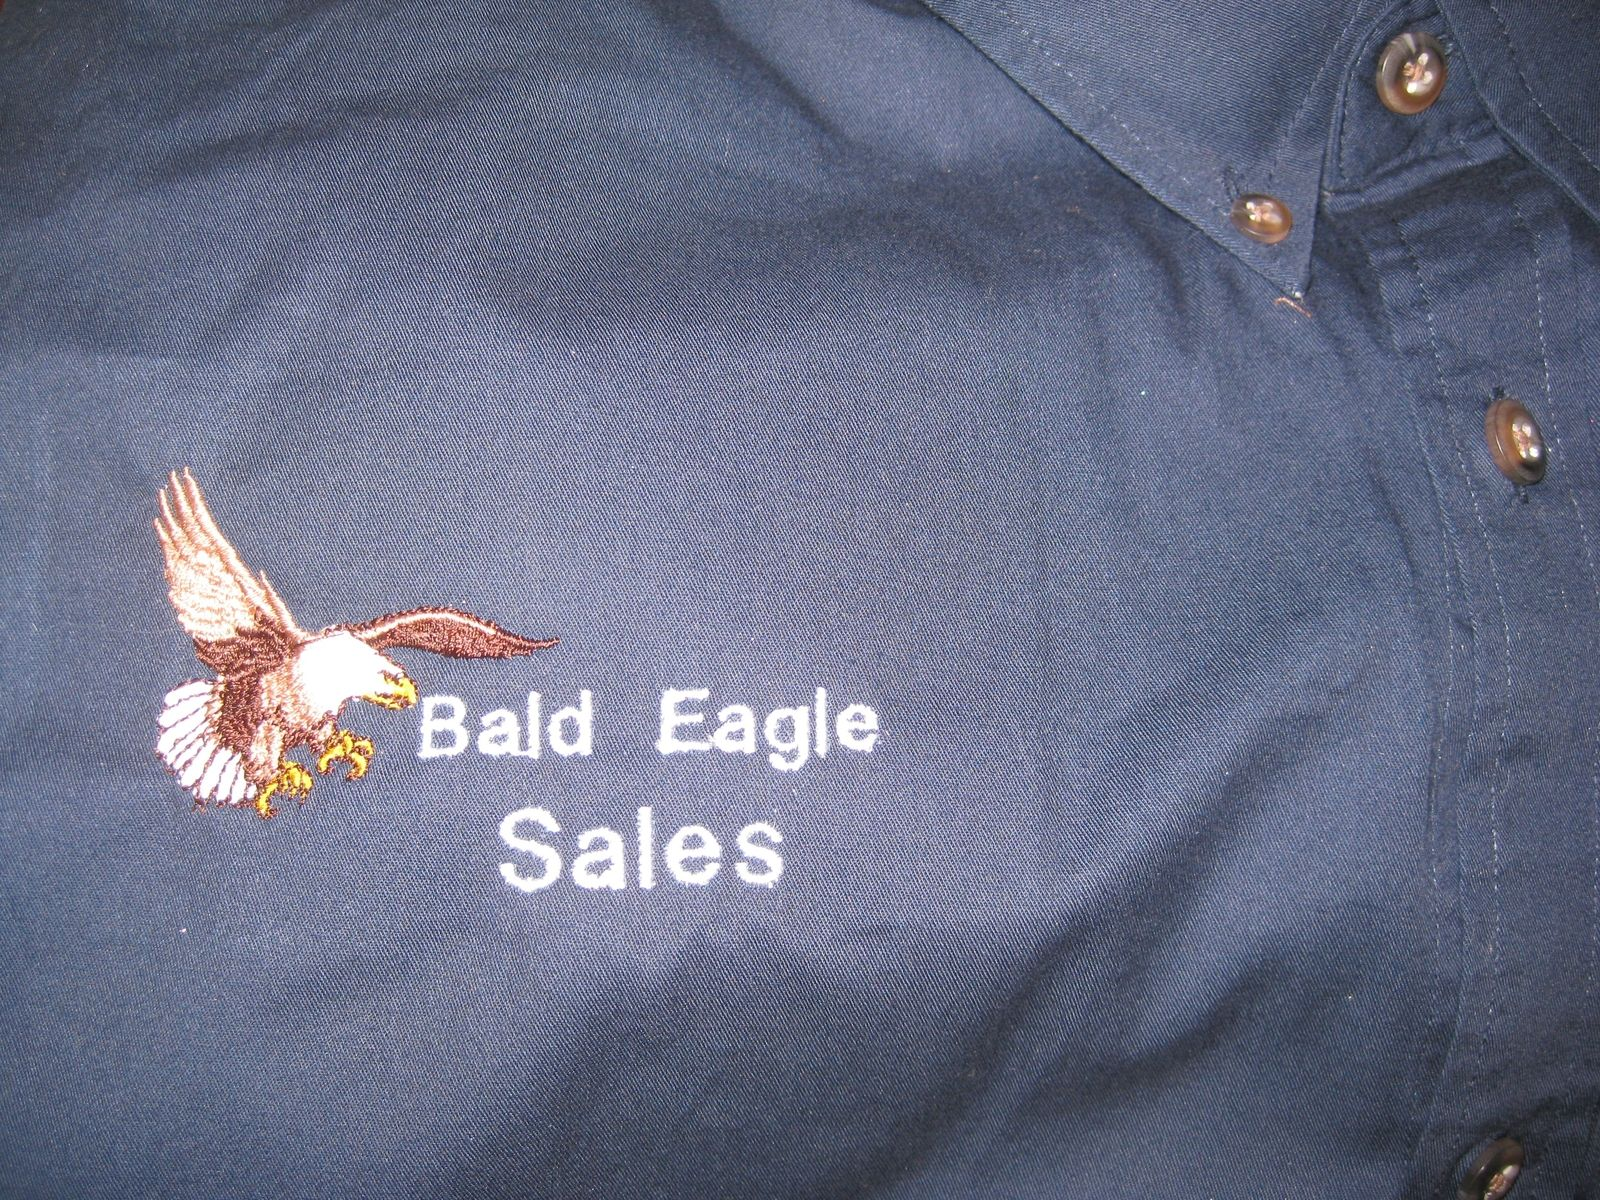 Hand Made Shirts Or Tshirts With Your Company Name On Them By Made